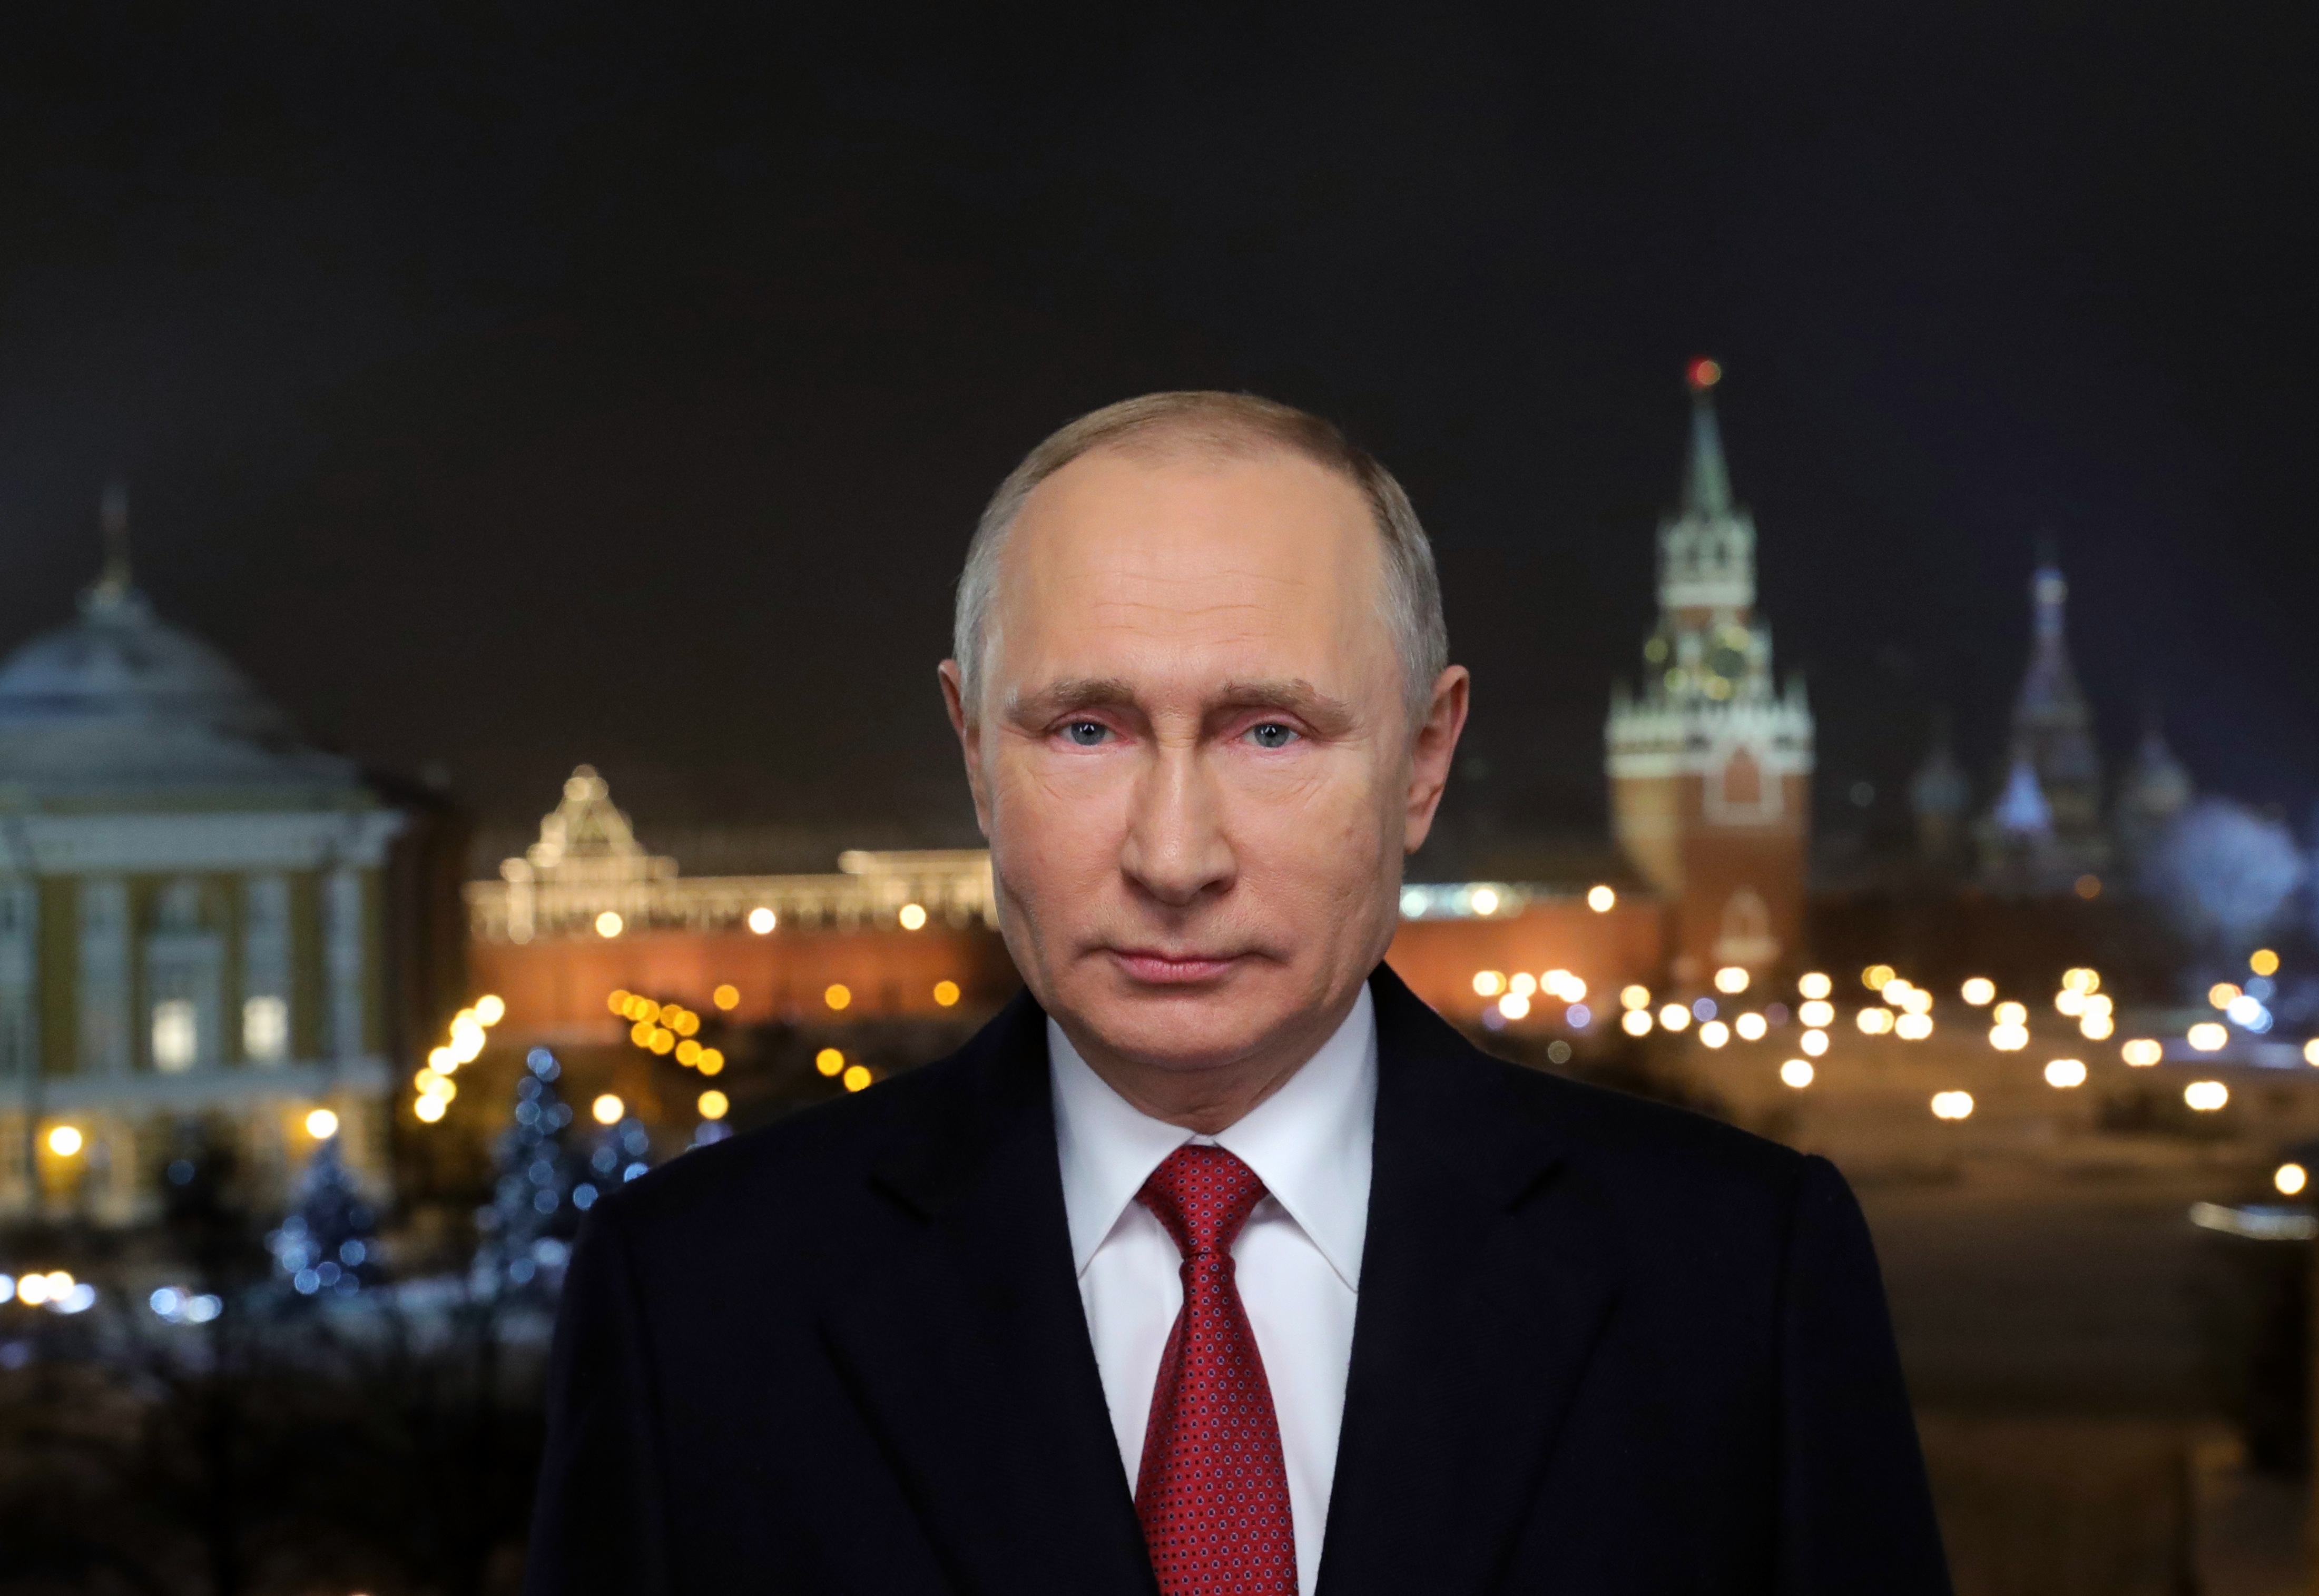 In this photo released by Kremlin Press service via Sputnik agency, Russian President Vladimir Putin speaks during a recording of his annual televised New Year's message in the Kremlin in Moscow, Jan. 31, 2018.